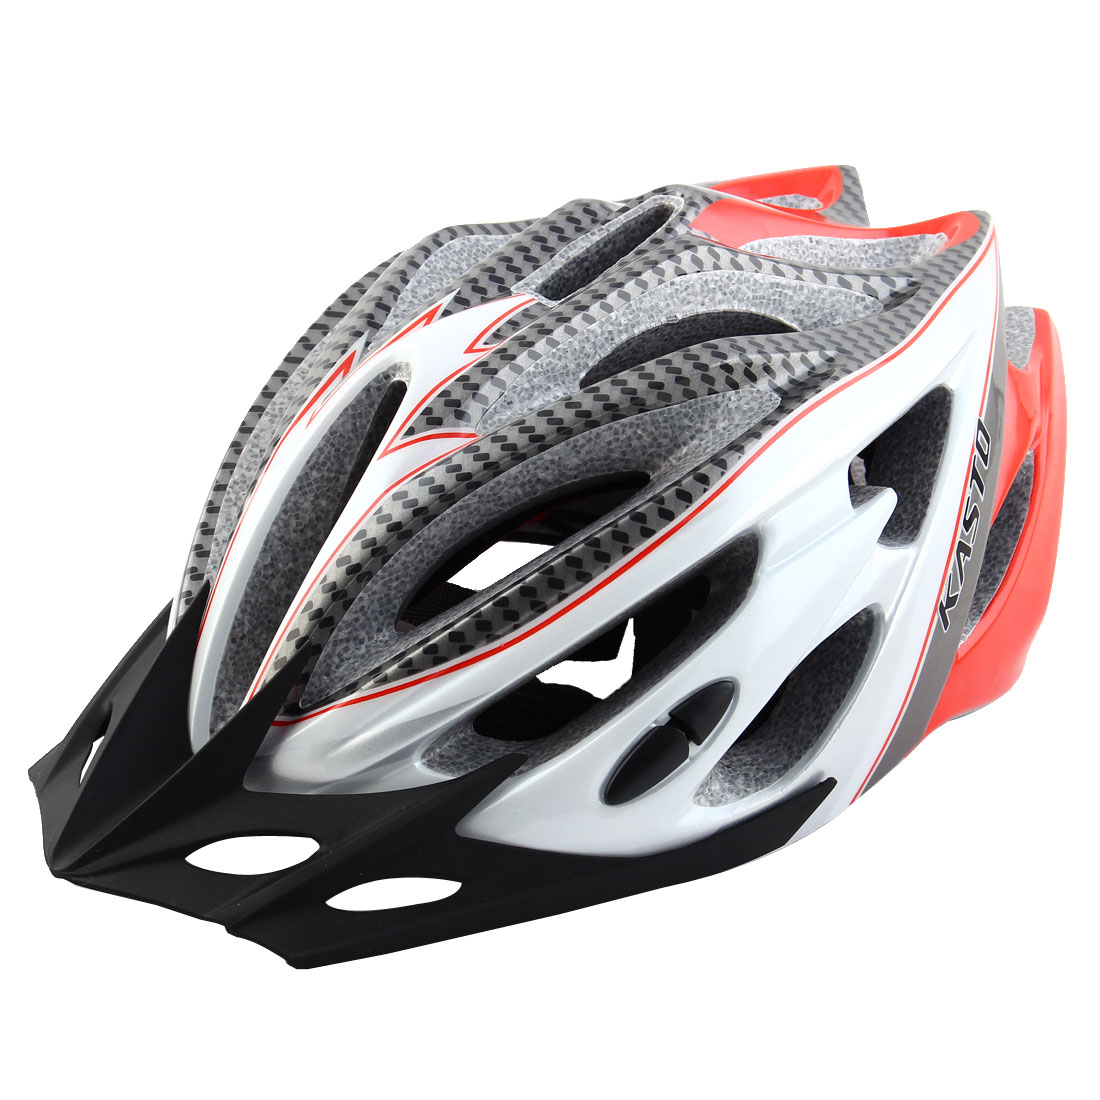 Adult Unisex 21 Holes Portable Cycling Cap Head Safety Protector Riding Hat Adjustable Biking Helmet Red White